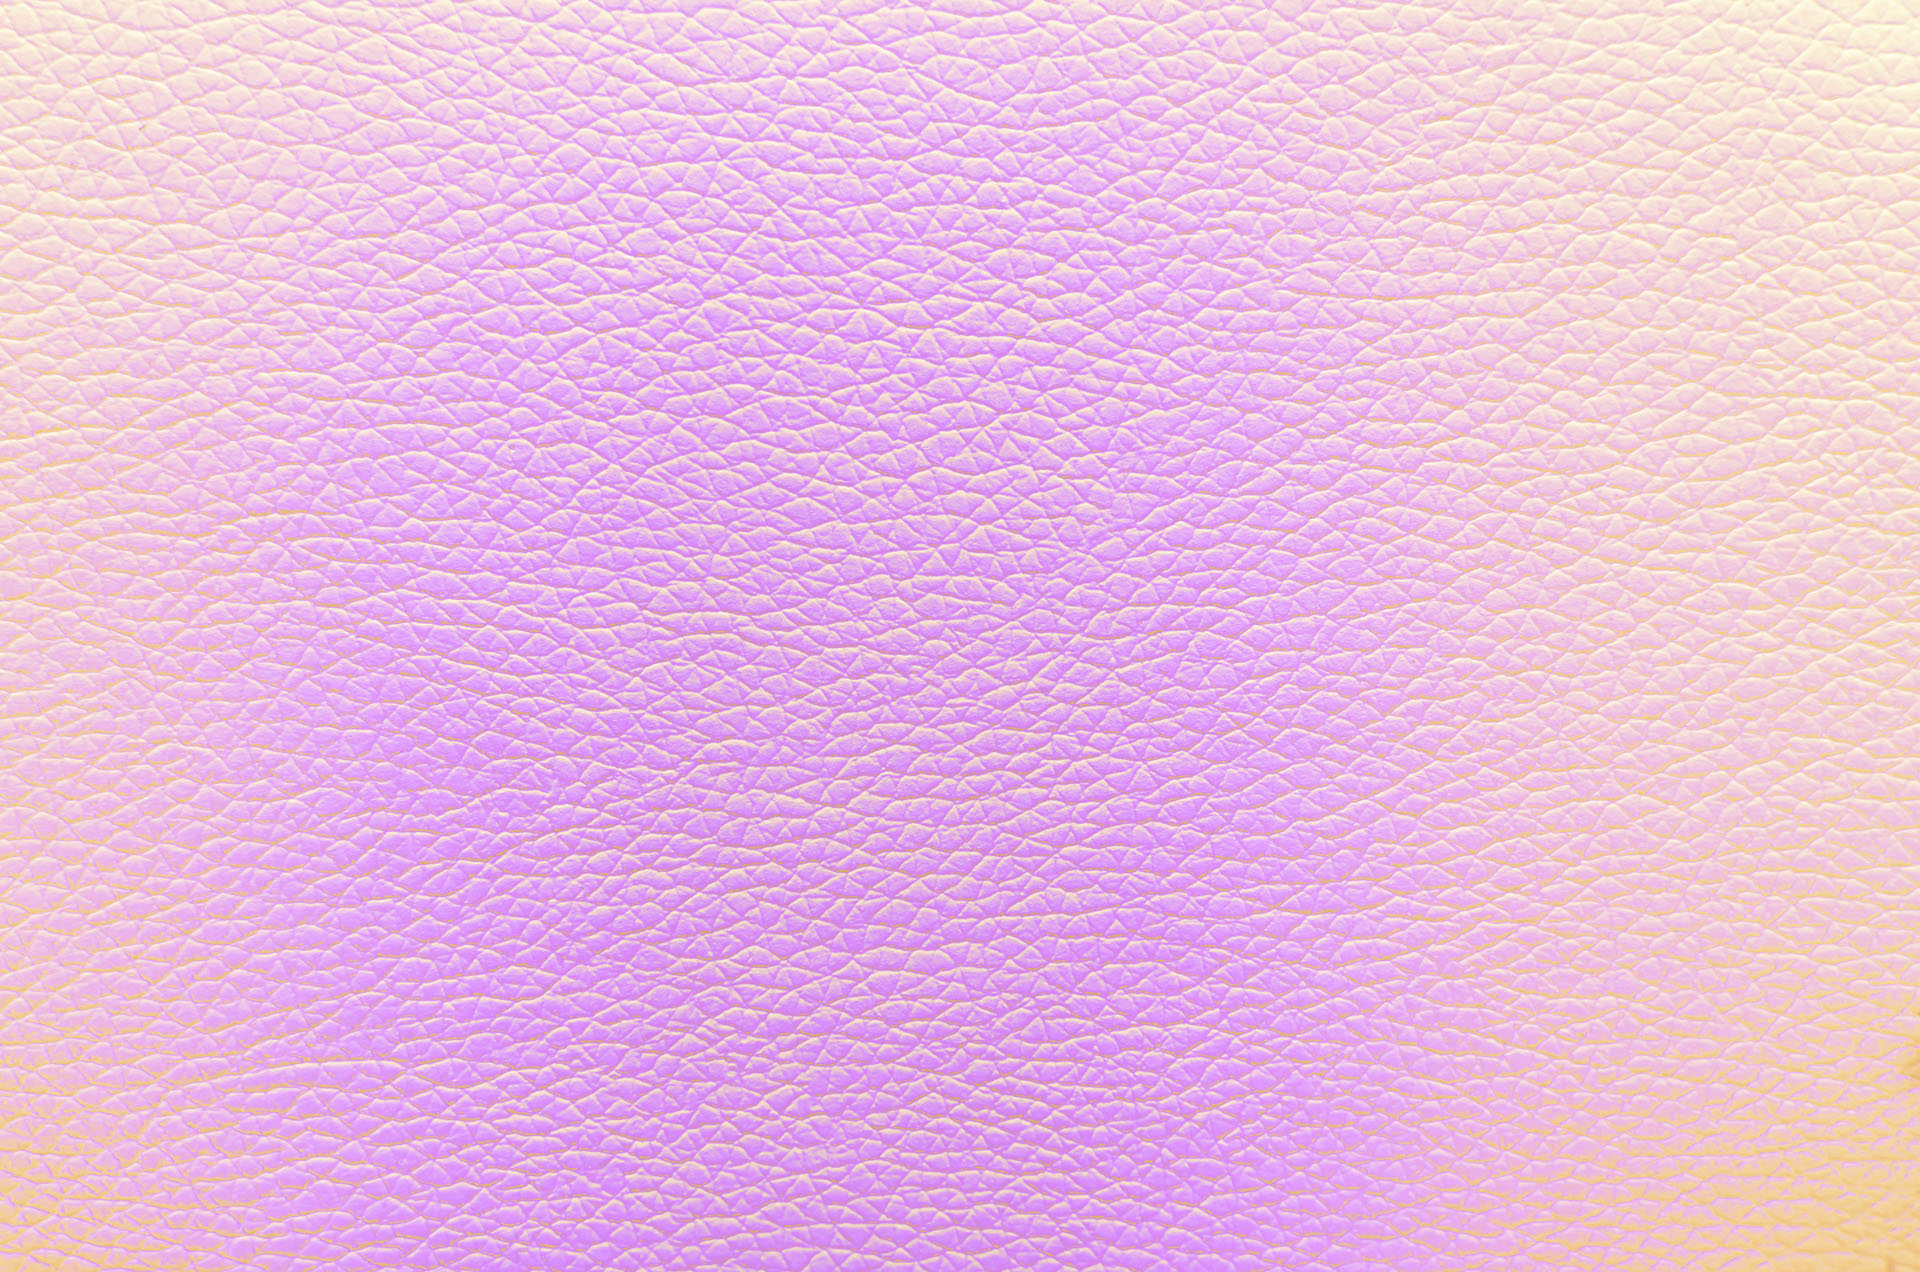 Leather pink texture for background